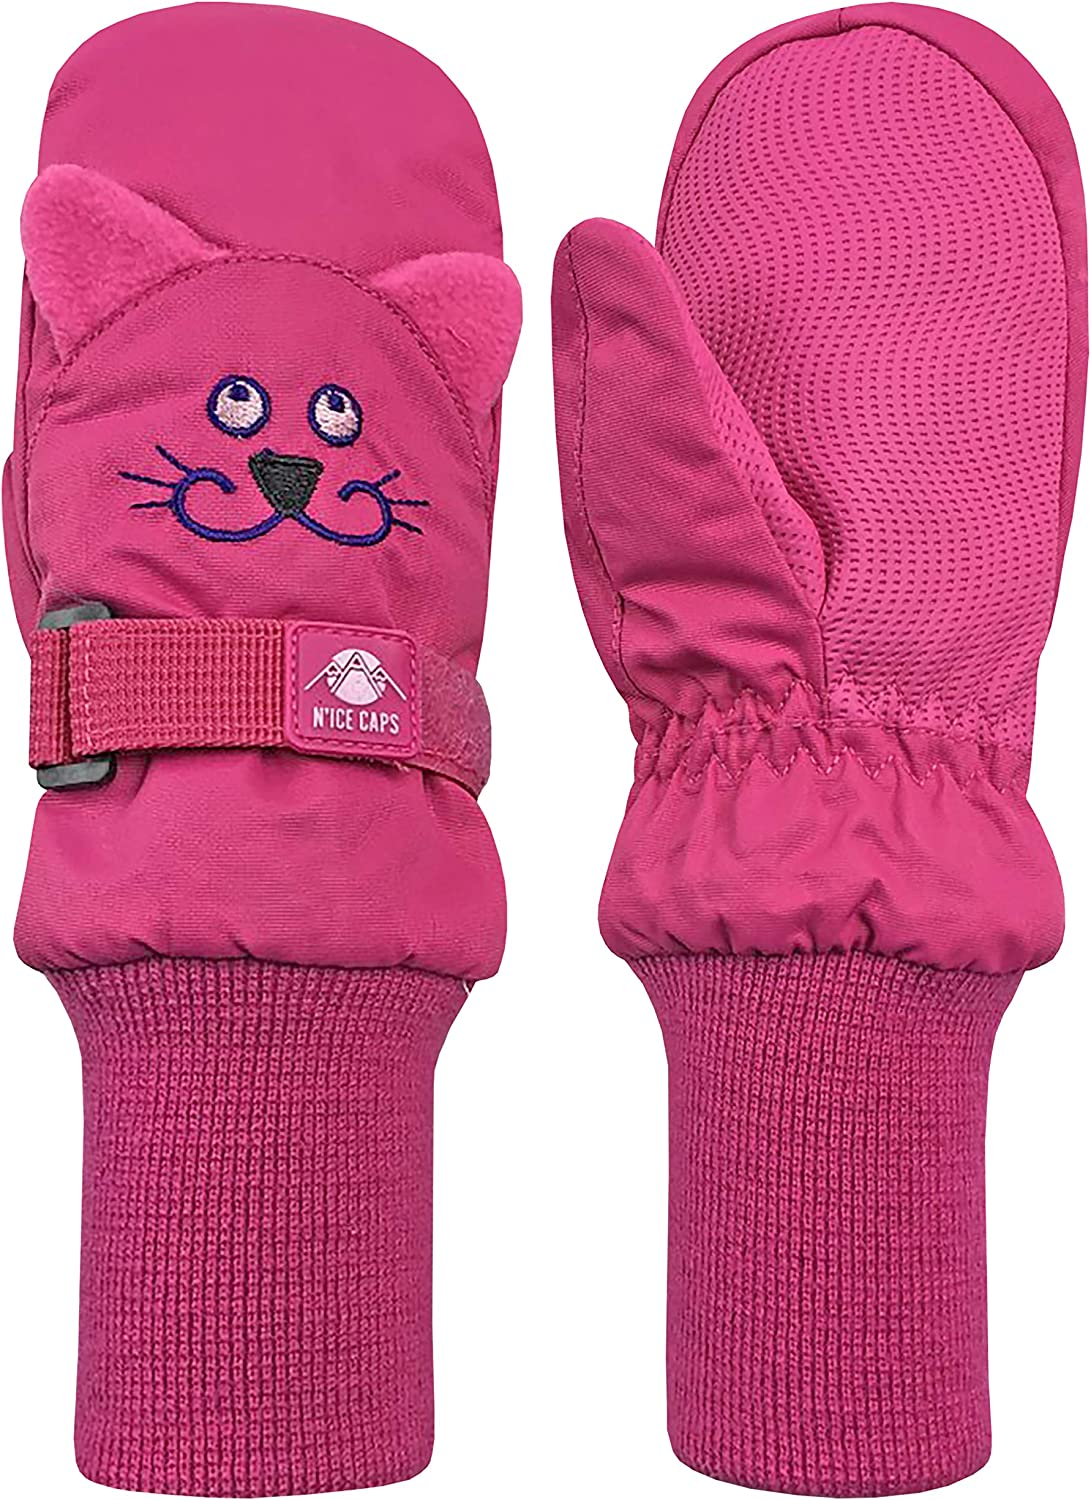 N'Ice Caps Little Kids Indianapolis Mall Cute Warm Winter Animal Faces Waterproof Rare